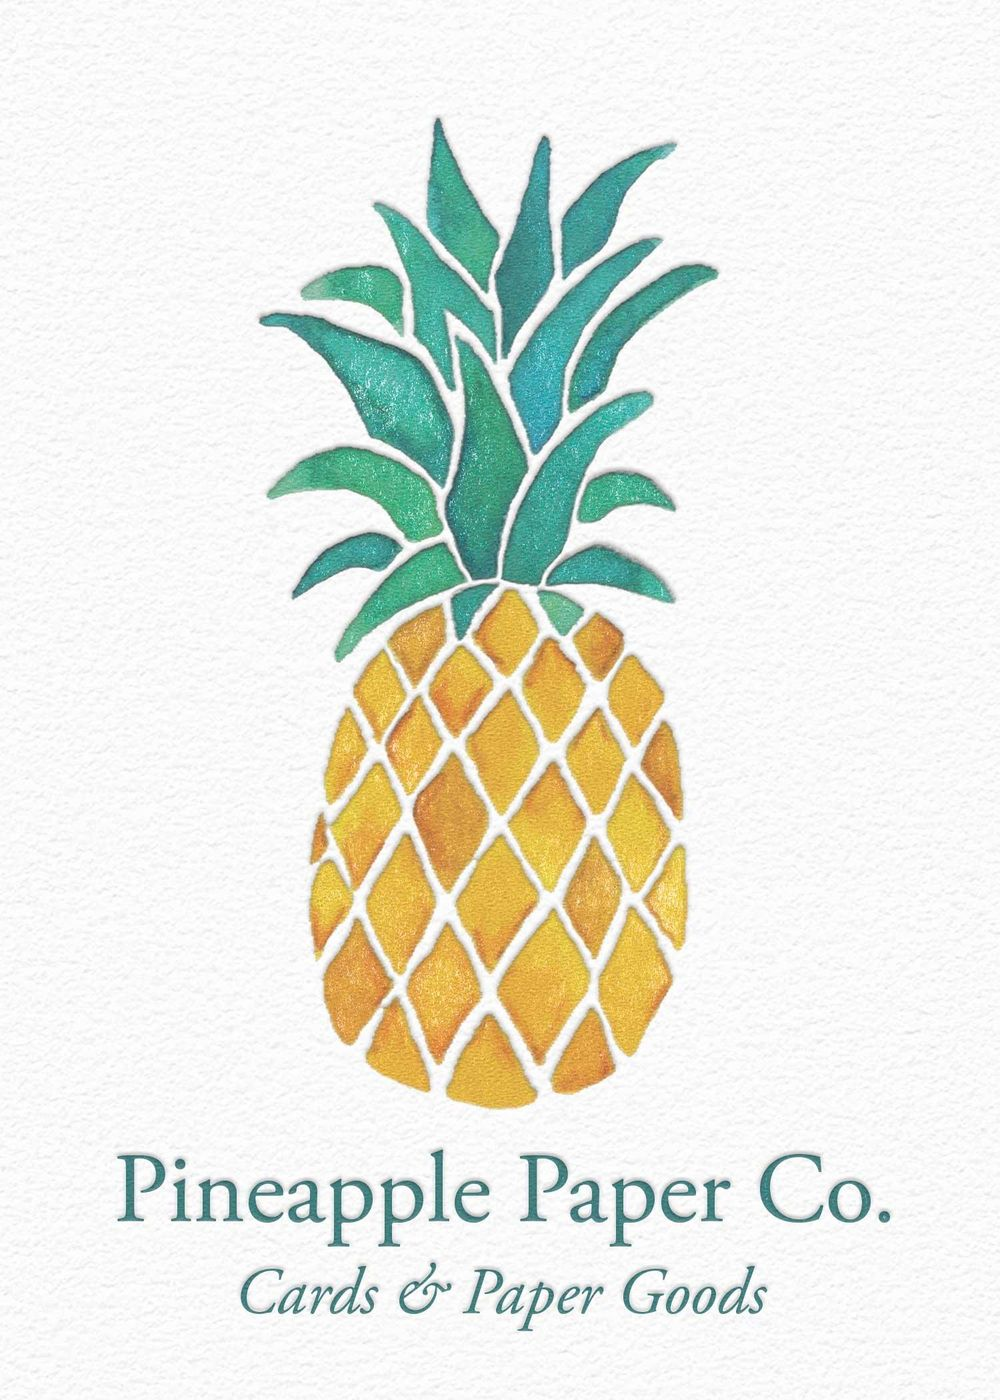 Pineapple Paper Co. - image 1 - student project